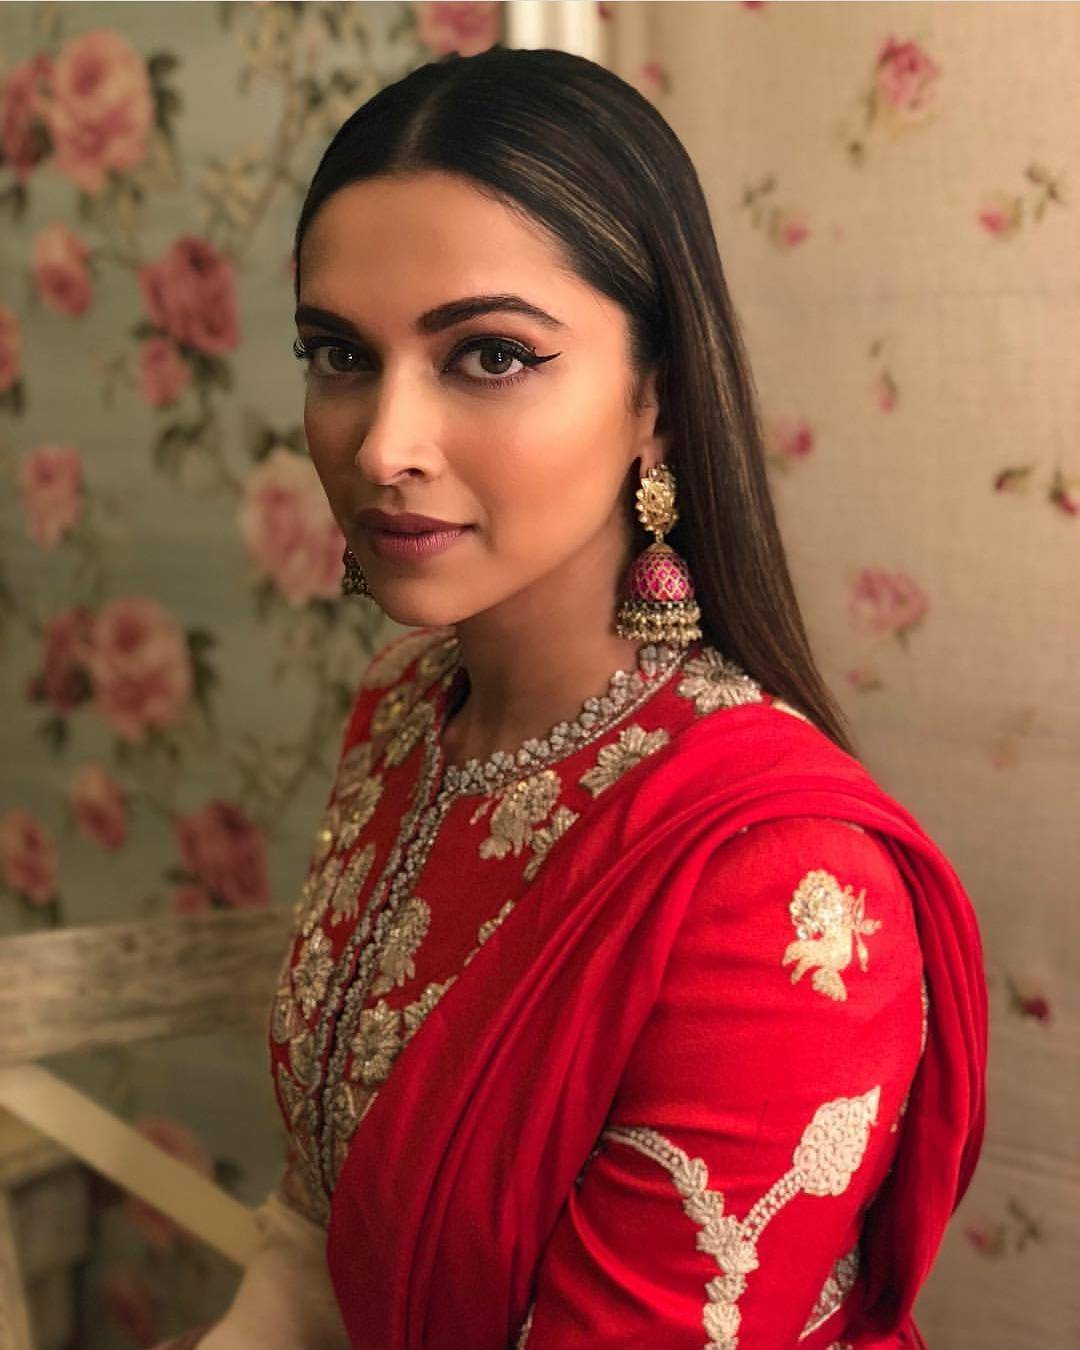 Wao!! Deepika Padukone's Bridal Beauty Ethnic Glam Look We Bet You've Never Seen Before